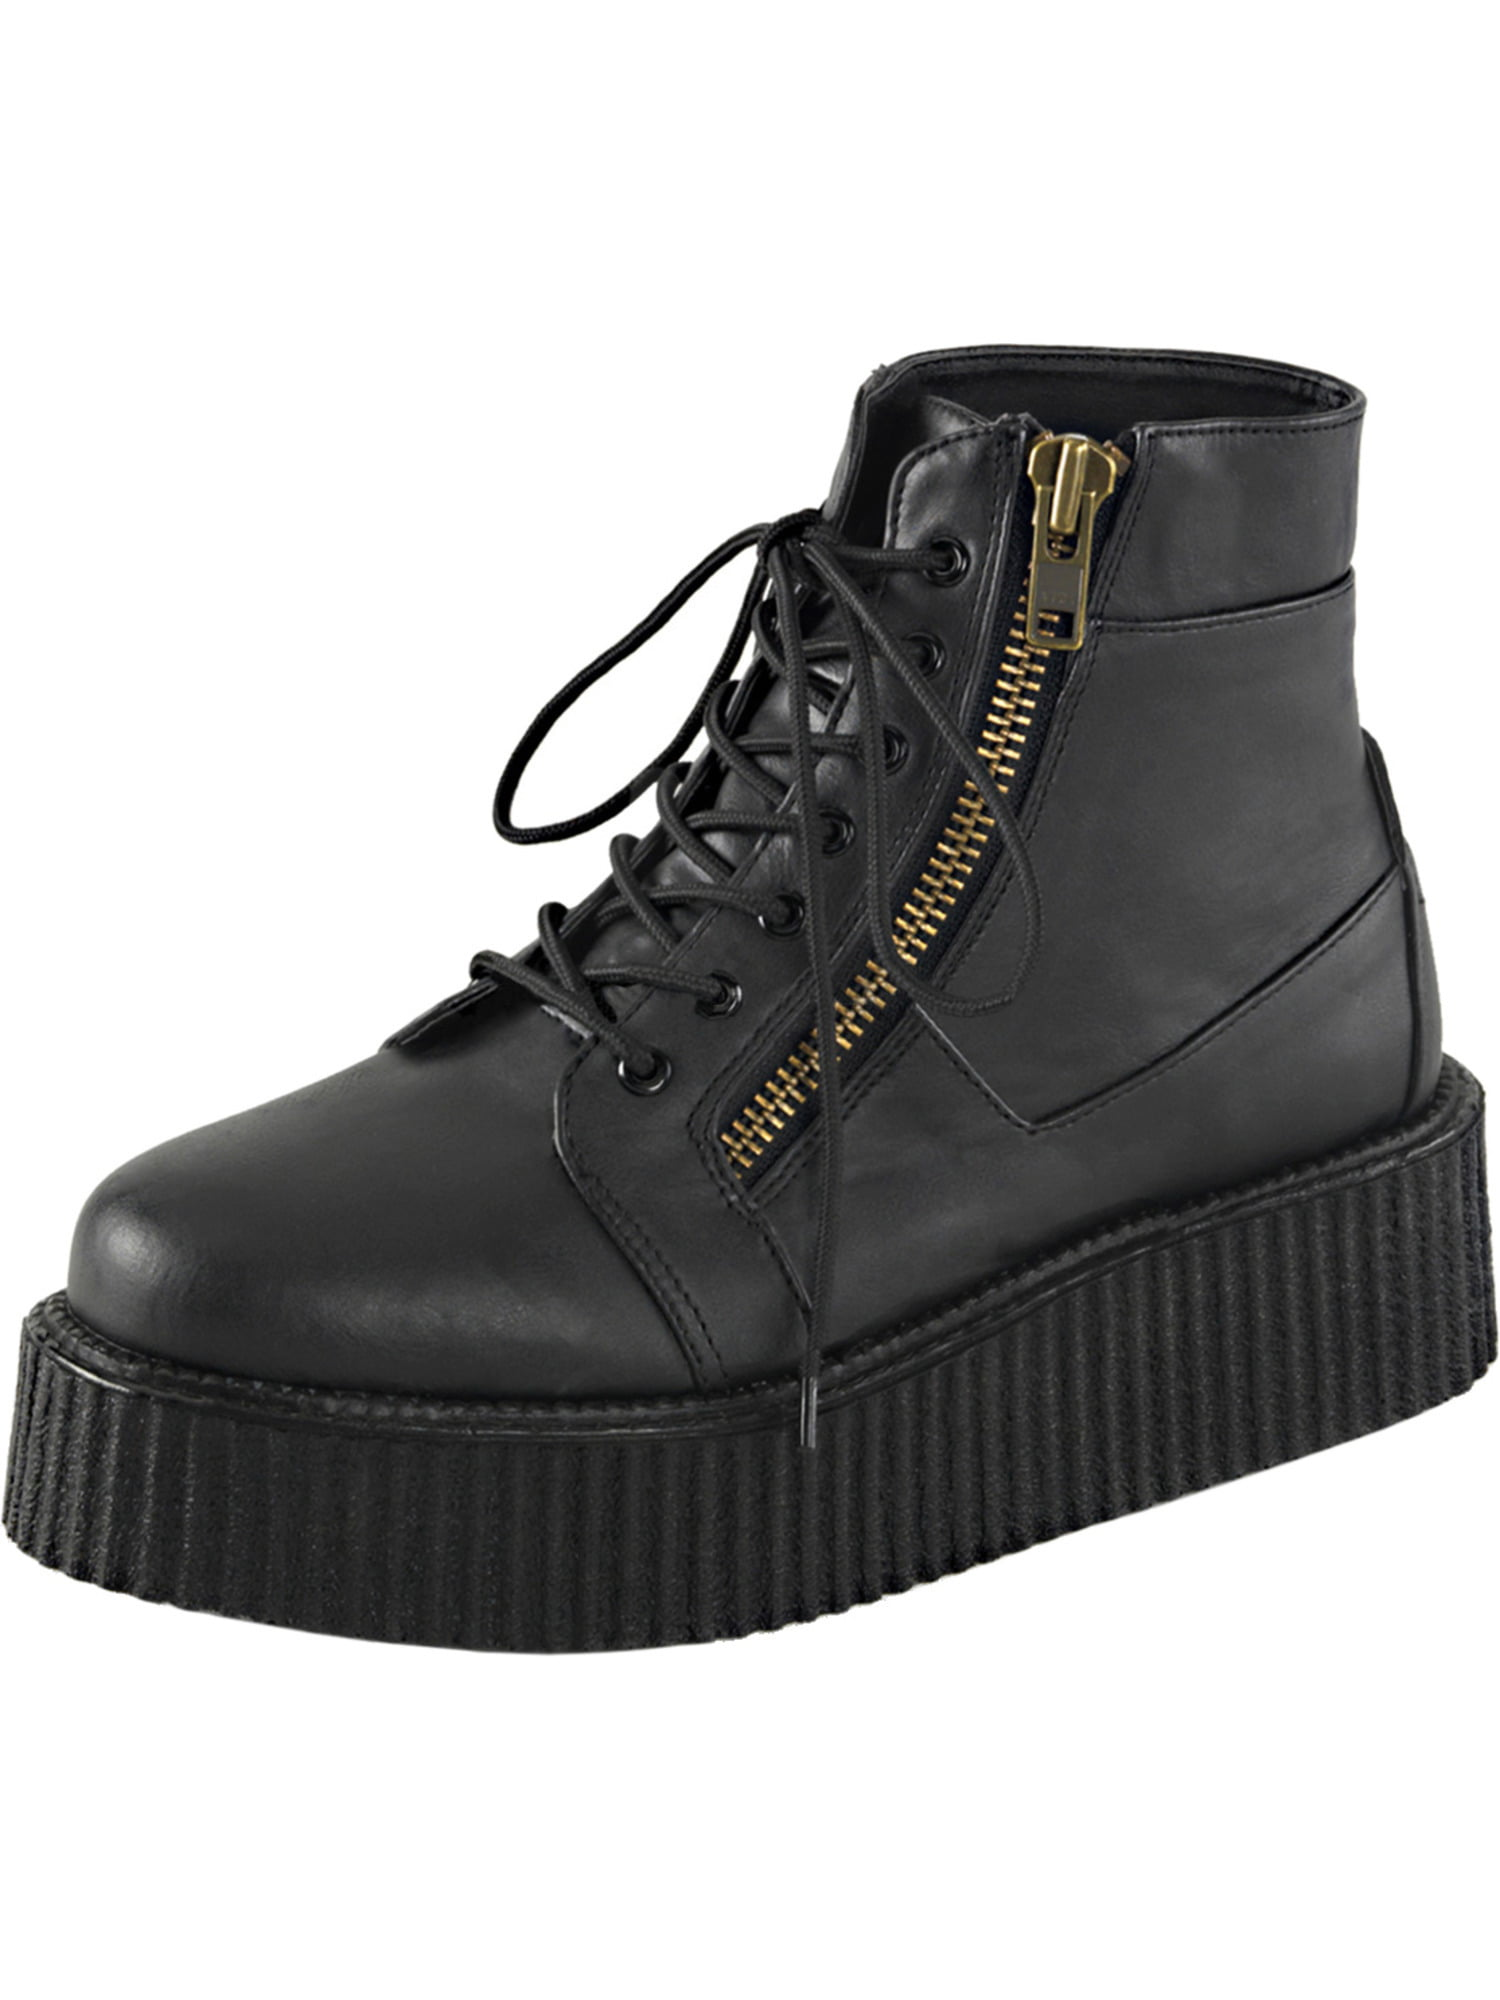 Mens Platform Boots Black Creeper Shoes Lace Up High Top Sneakers 2 In Platform